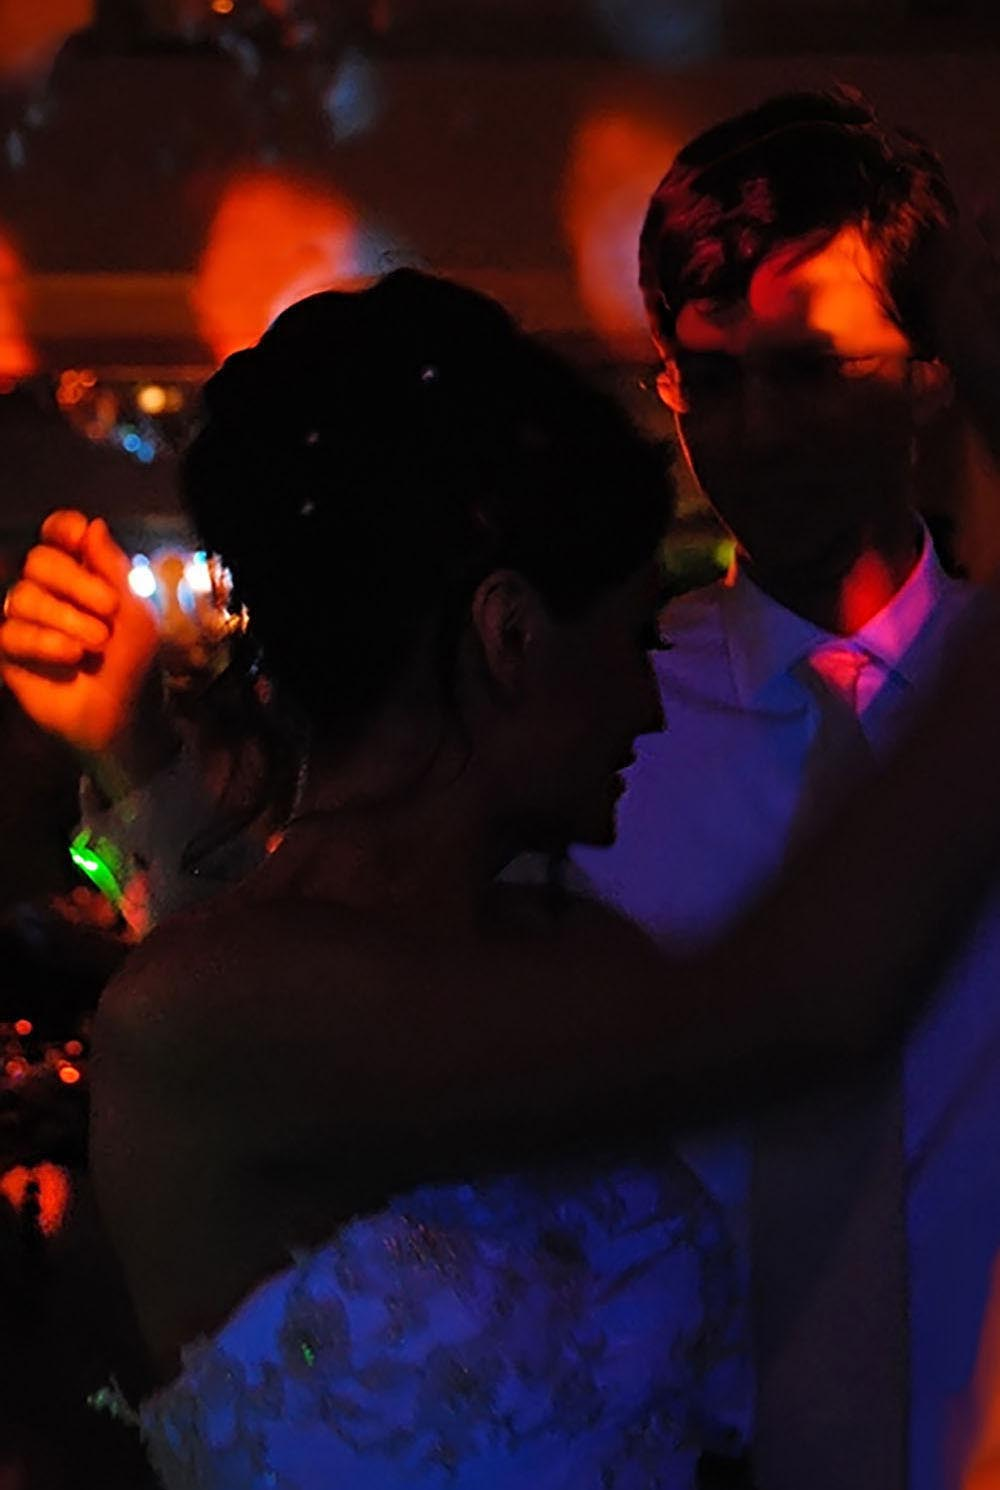 Couple dancing at wedding party